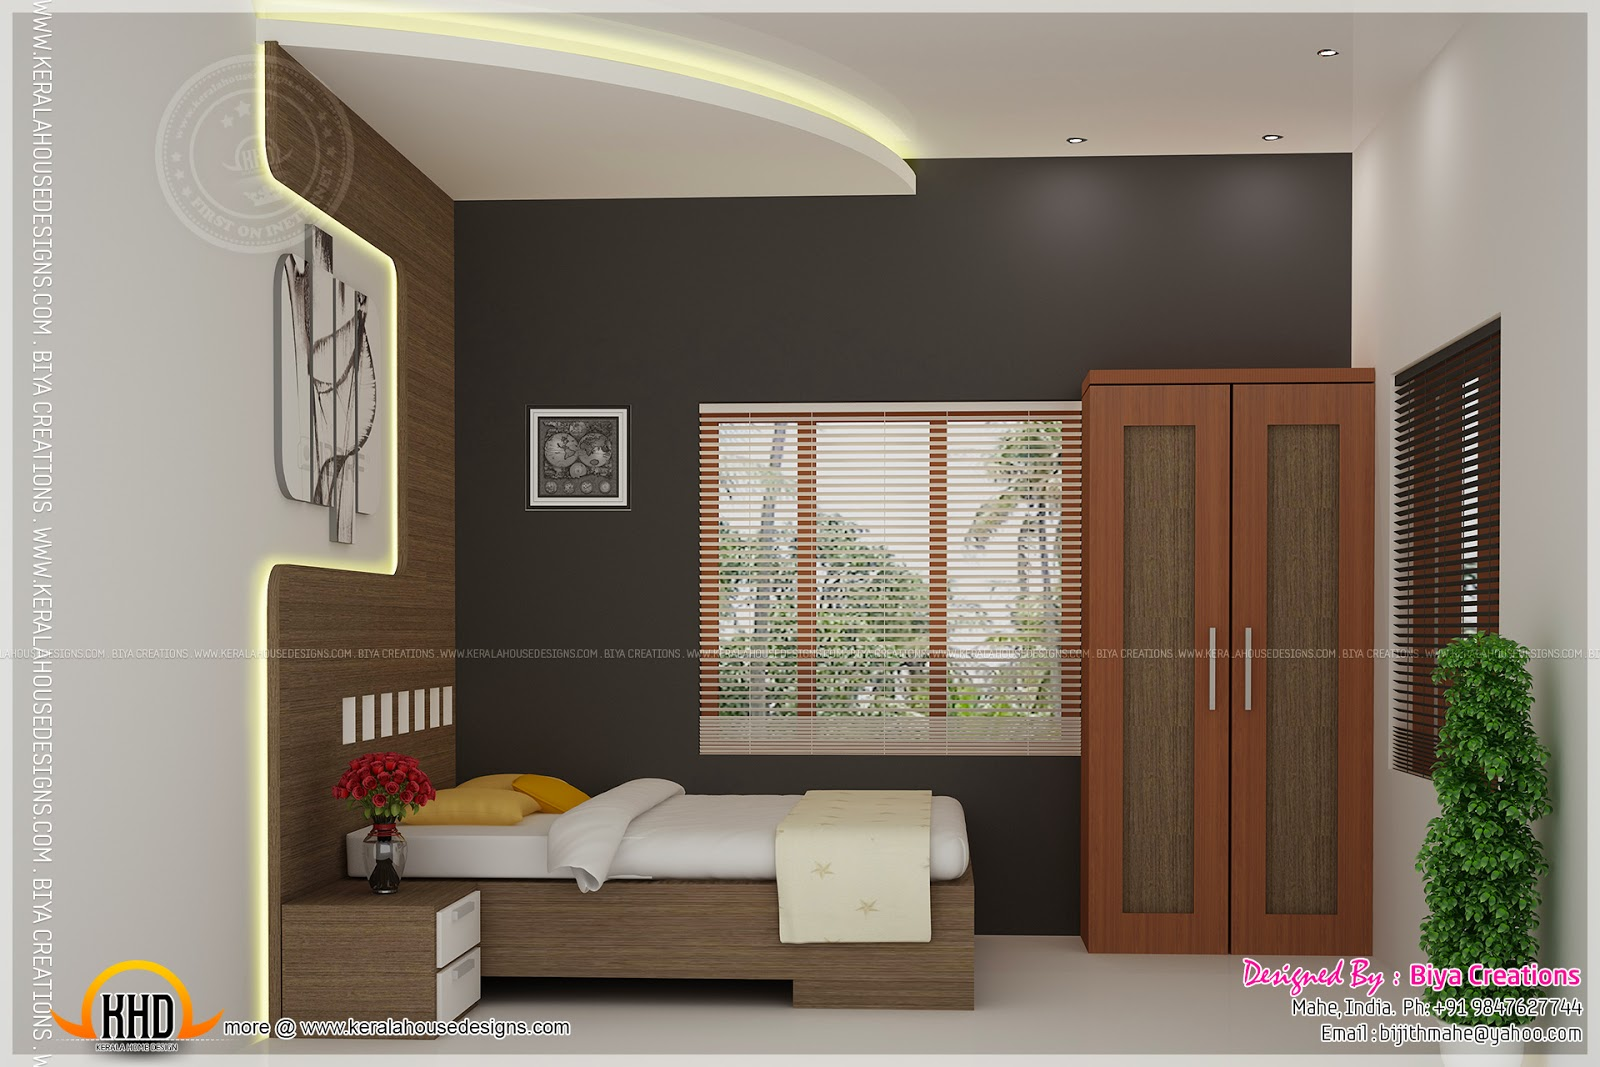 Bedroom kid bedroom and kitchen interior kerala home for Home design kitchen decor